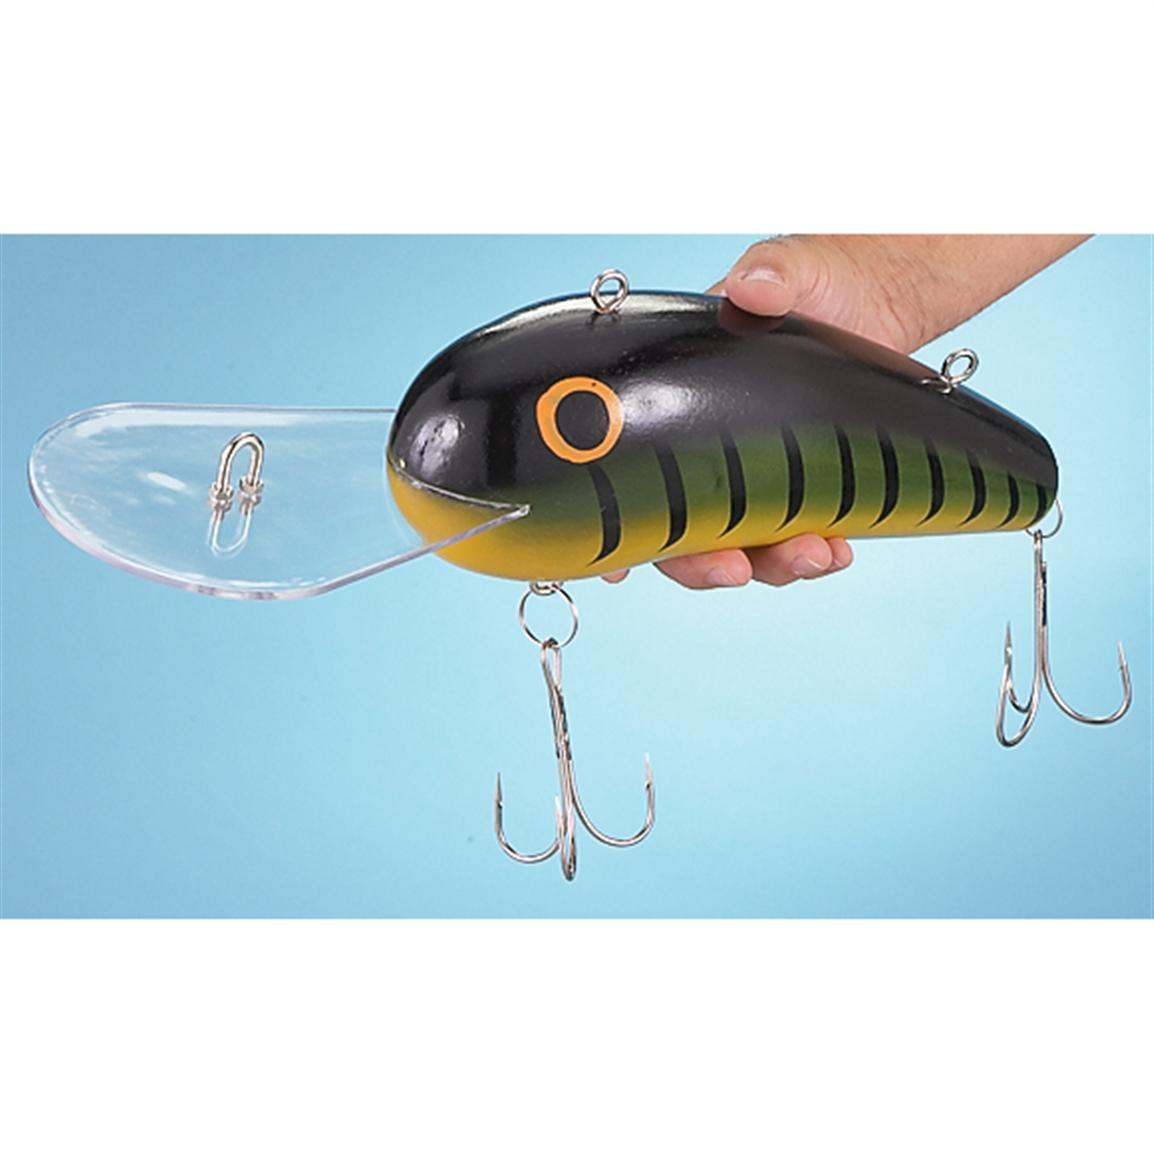 giant firetiger fishing lure 184382 gag unique gifts